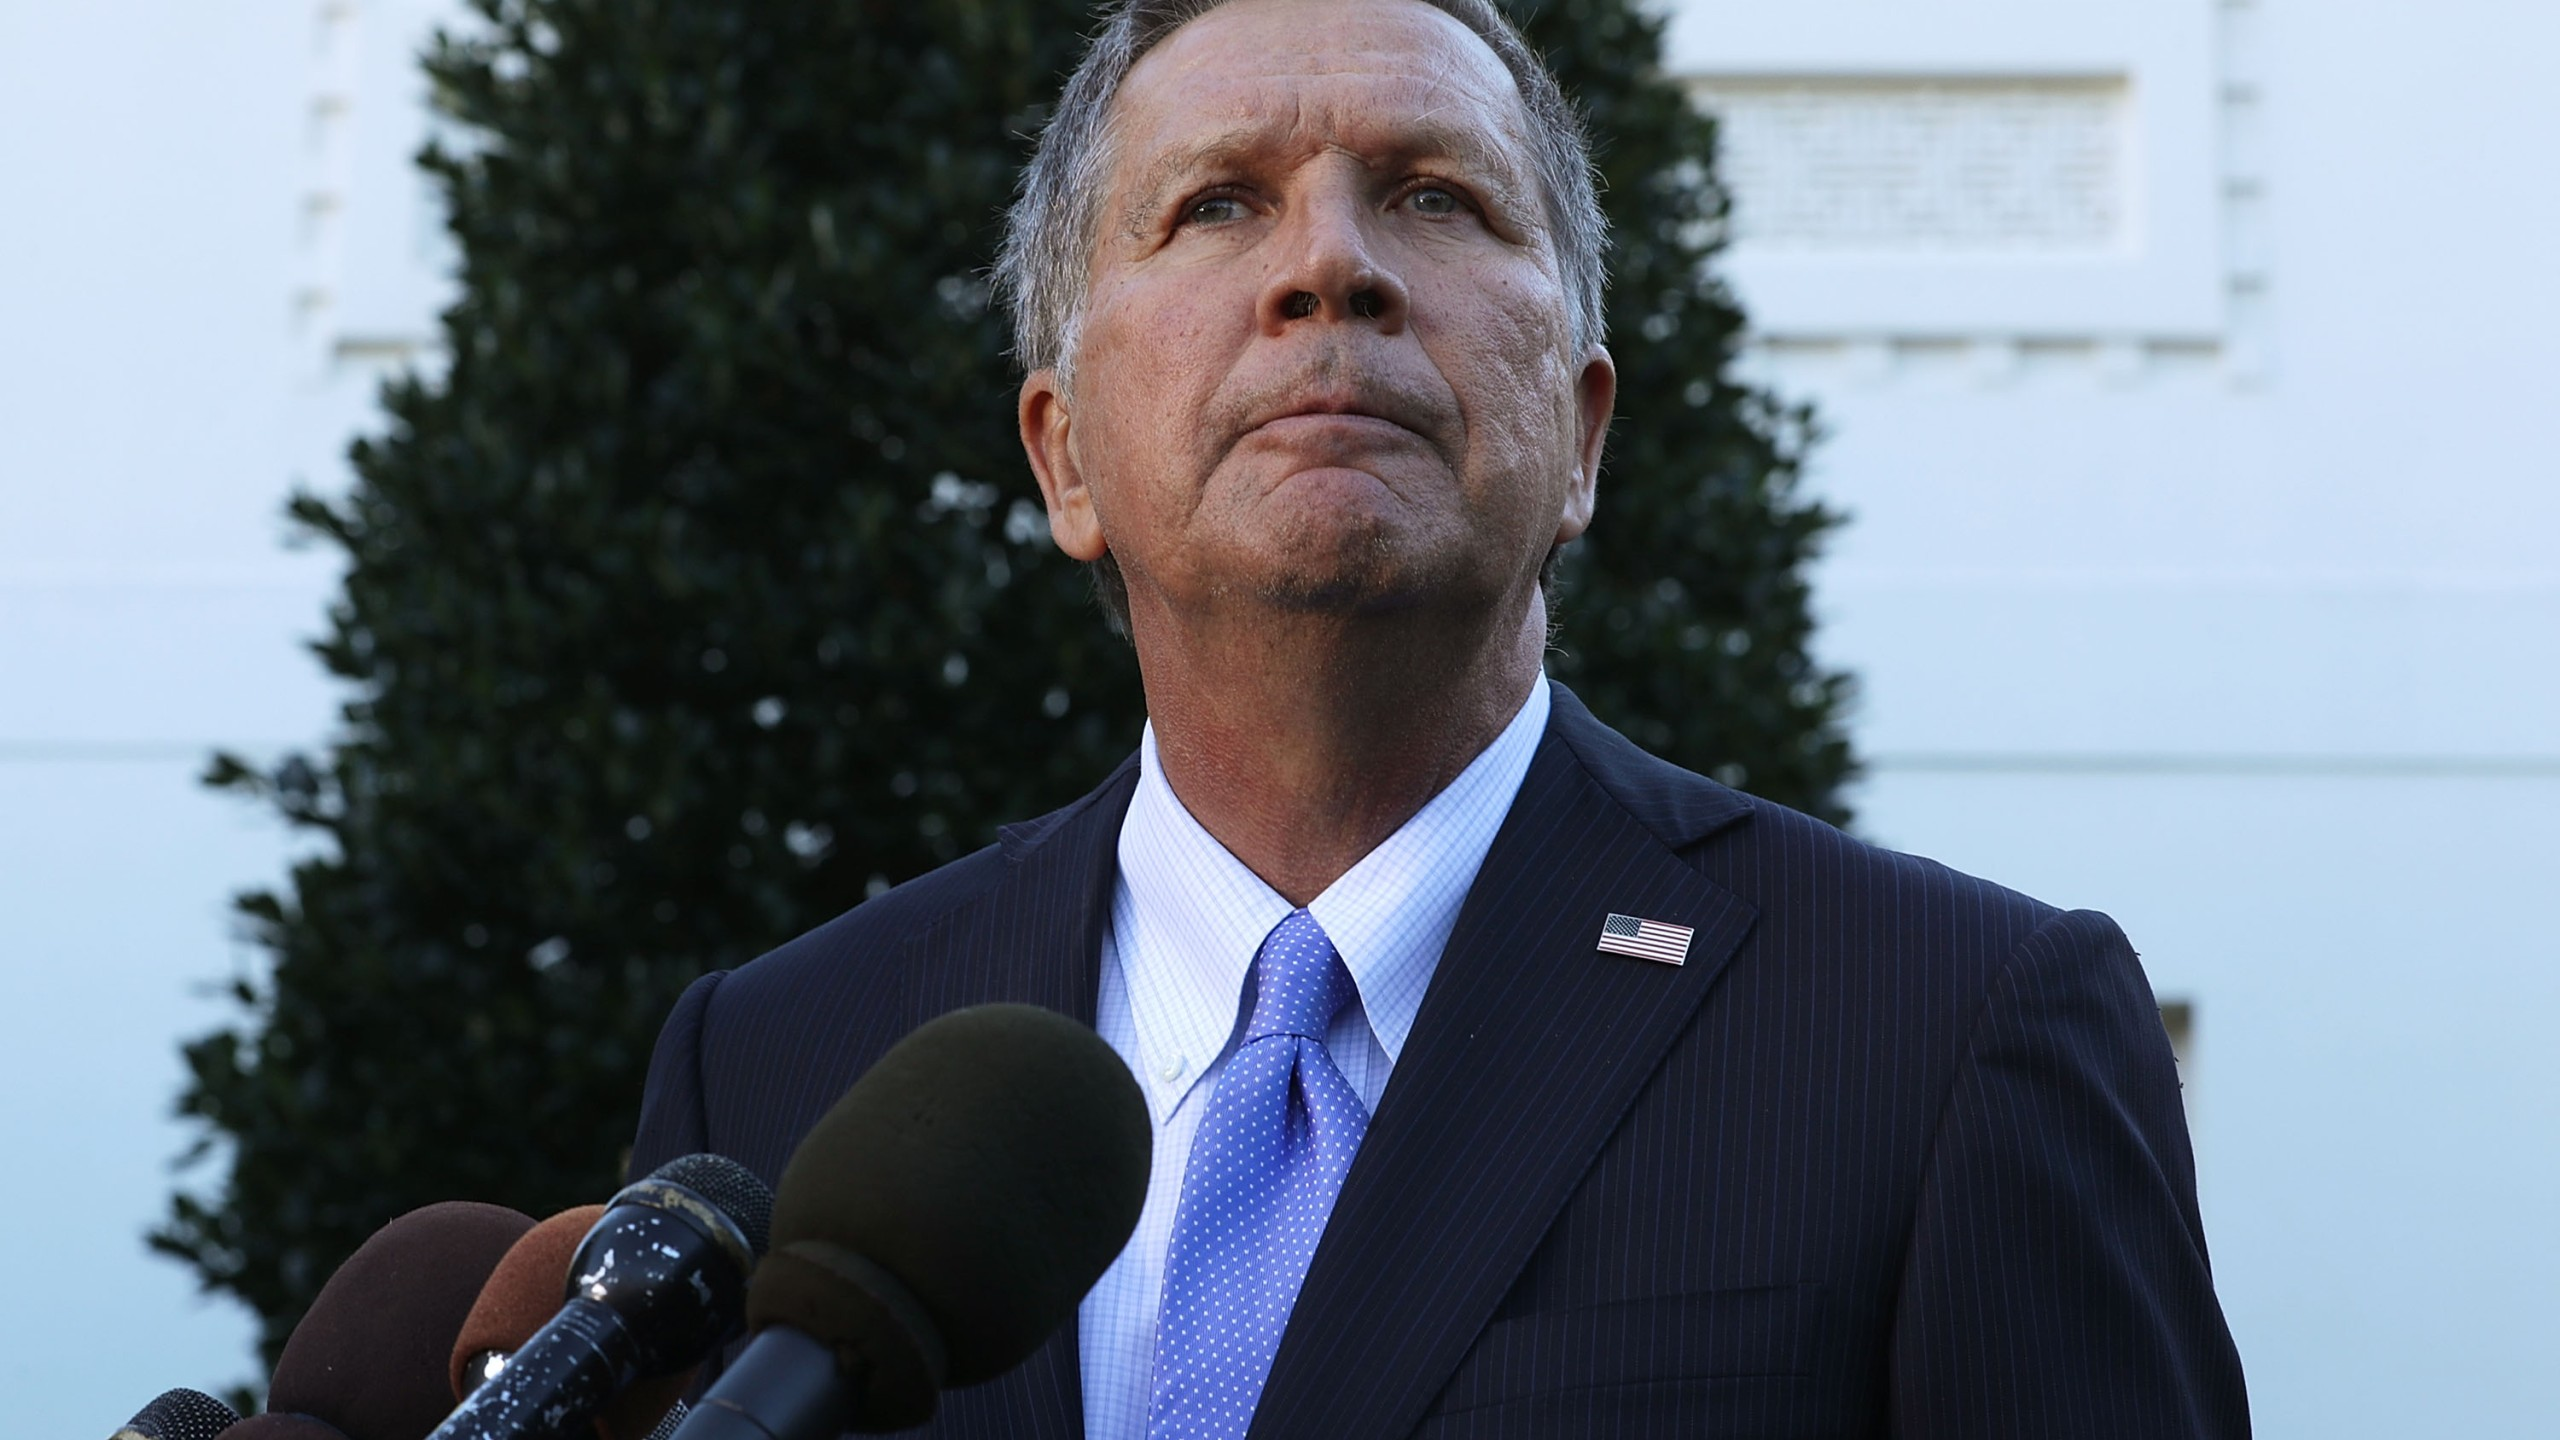 Ohio Governor John Kasich speaks to members of the media outside the West Wing November 10, 2016 at the White House in Washington, DC. (Credit: Alex Wong/Getty Images)